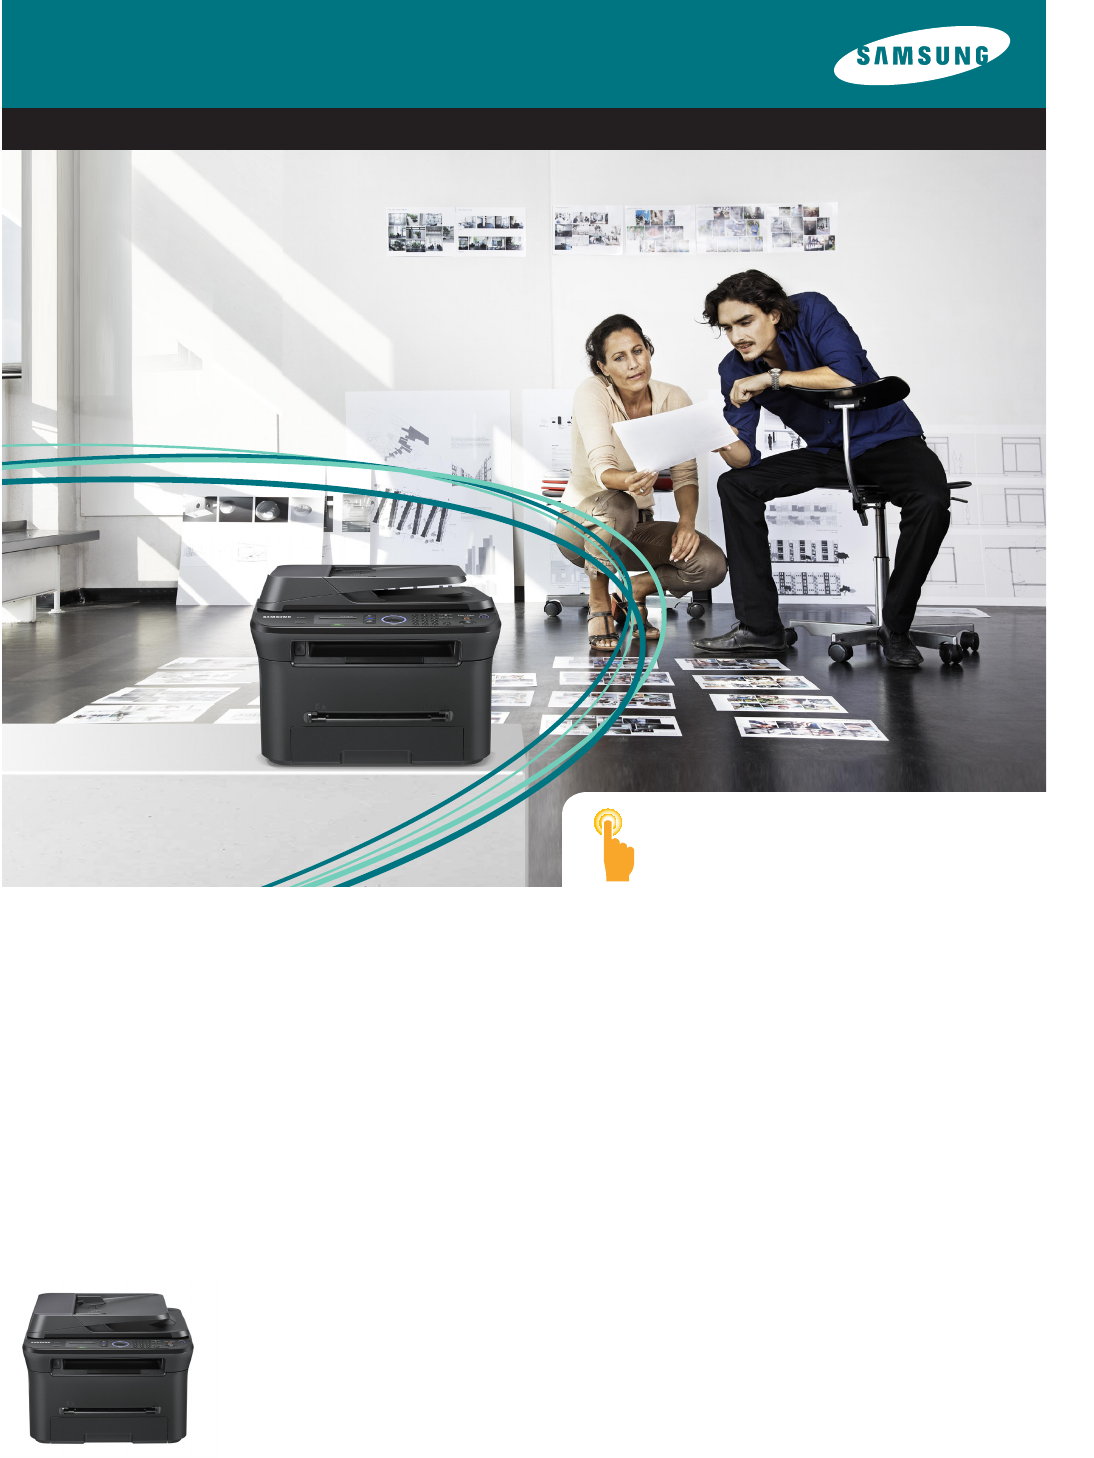 samsung all in one printer scx 4623f user guide manualsonline com rh office manualsonline com samsung scx-4623f manual en español samsung scx 4623f manual portugues